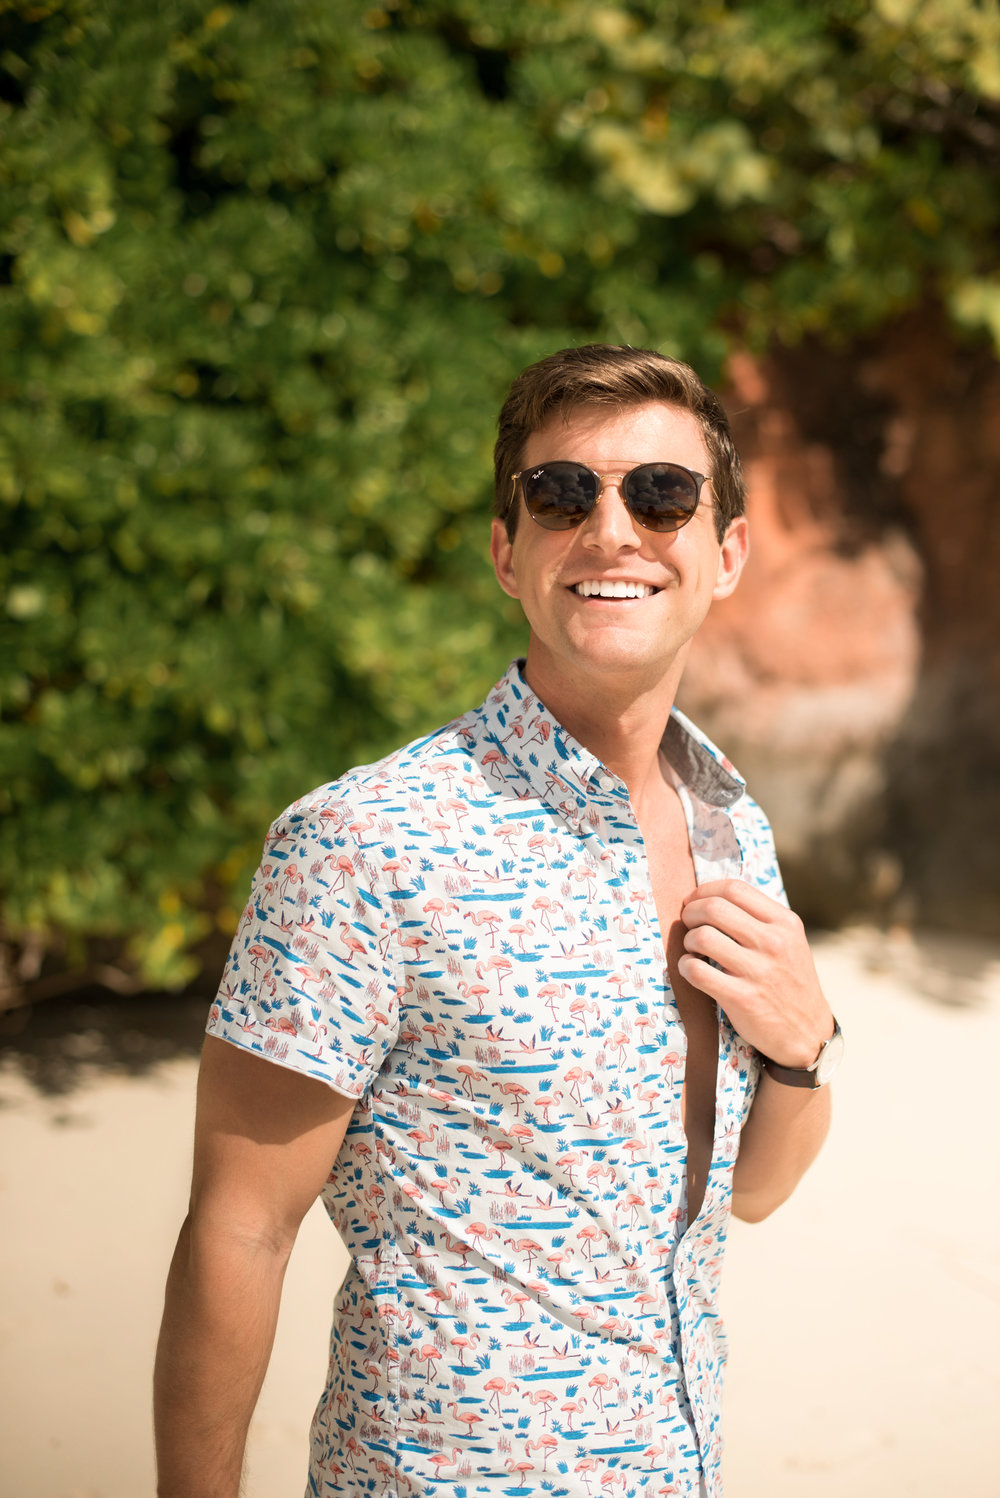 This button down J-Crew flamingo shirt had me living my best island life. Such a great choice for the island life. J-Crew also has more of these in different patterns - even one with ice cream on it!